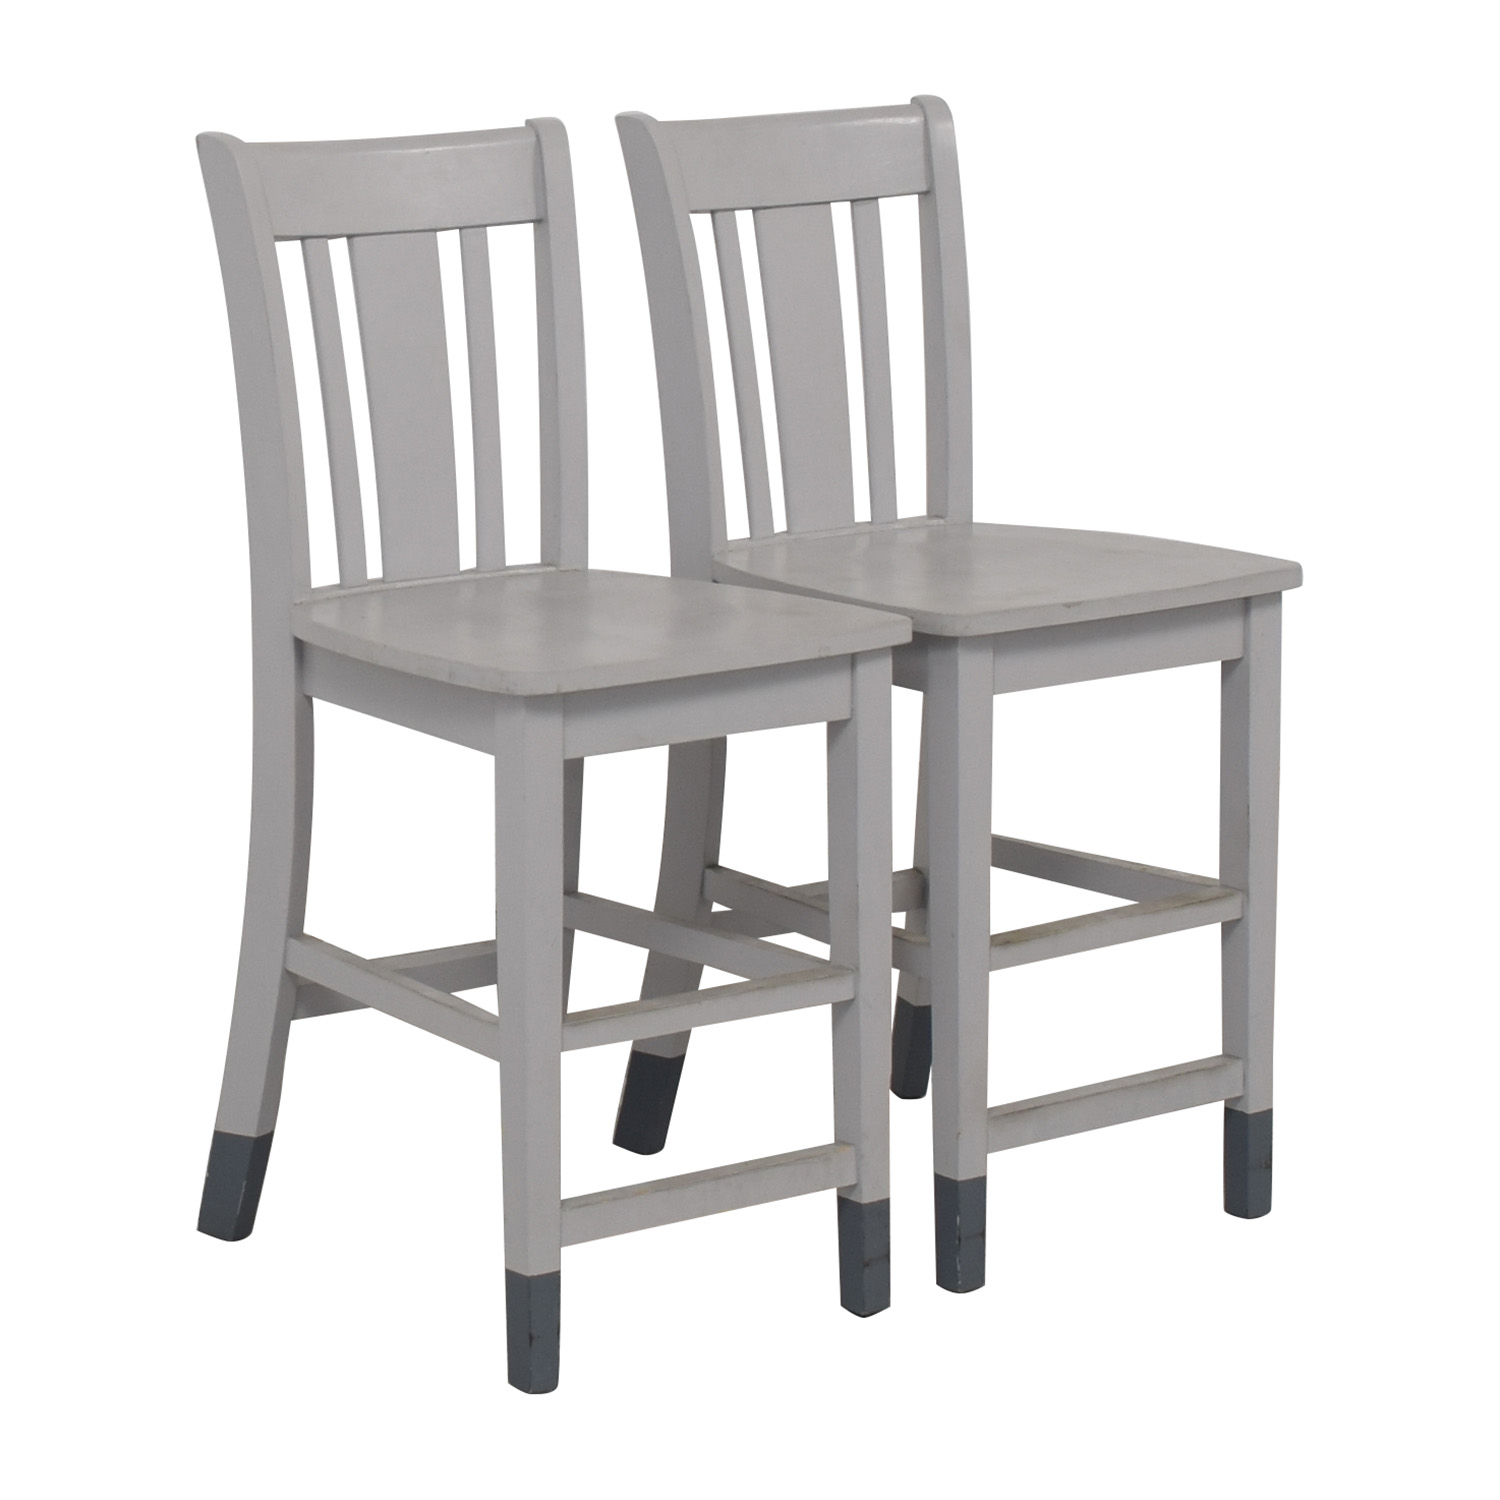 Grey Wood Counter-Height Chairs / Dining Chairs